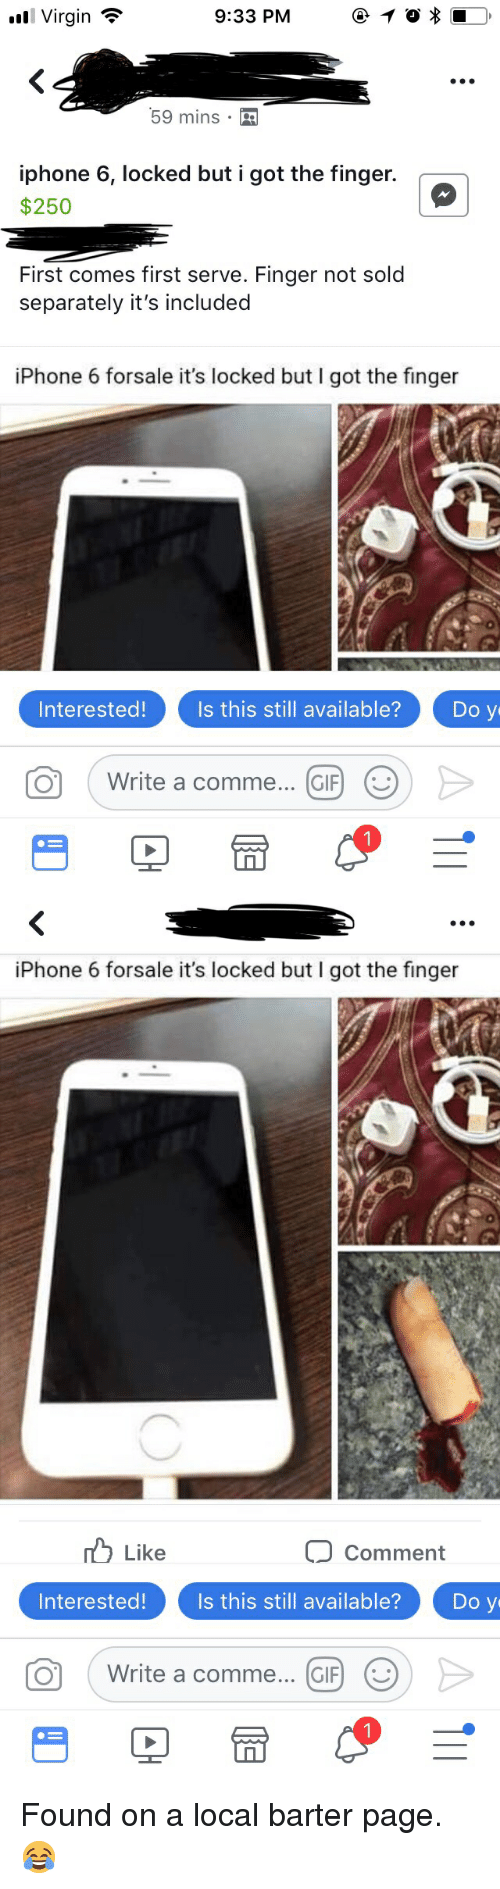 Facebook, Funny, and Gif: l Virgin  9:33 PM 1  59 mins  iphone 6, locked but i got the finger.  $250  |  First comes first serve. Finger not sold  separately it's included  iPhone 6 forsale it's locked but I got the finger  0  Interested!Is this still available?Do y  O Write a comme... GIF) (   iPhone 6 forsale it's locked but I got the finger  Like  Comment  Interested!  Is this still available?  Do y  ( Write a comme  CIF)  (じ Found on a local barter page. 😂